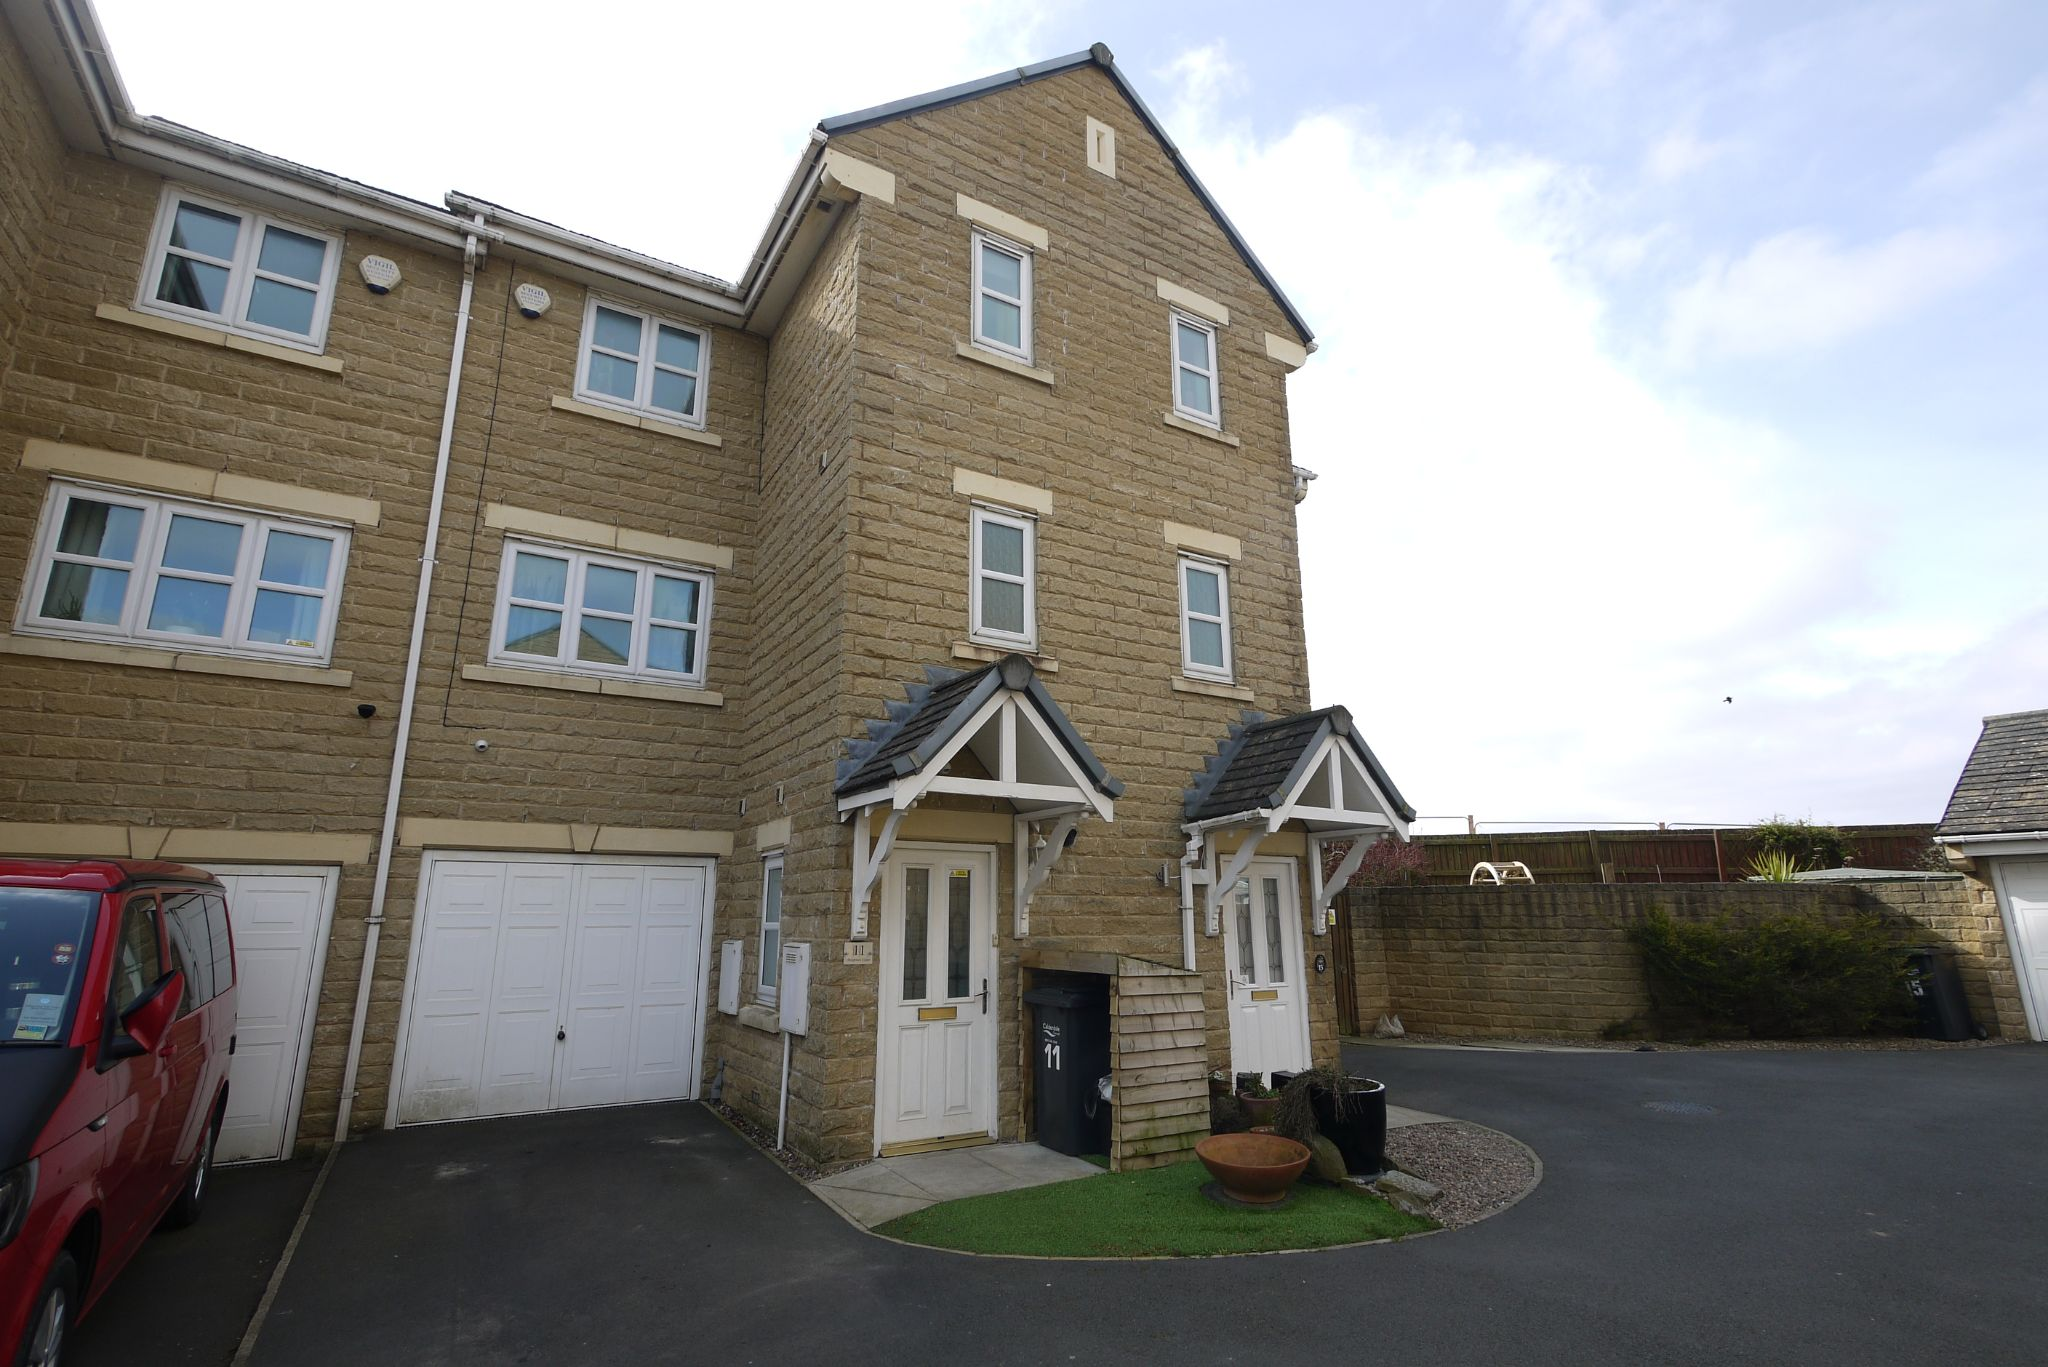 4 bedroom town house For Sale in Brighouse - Main.